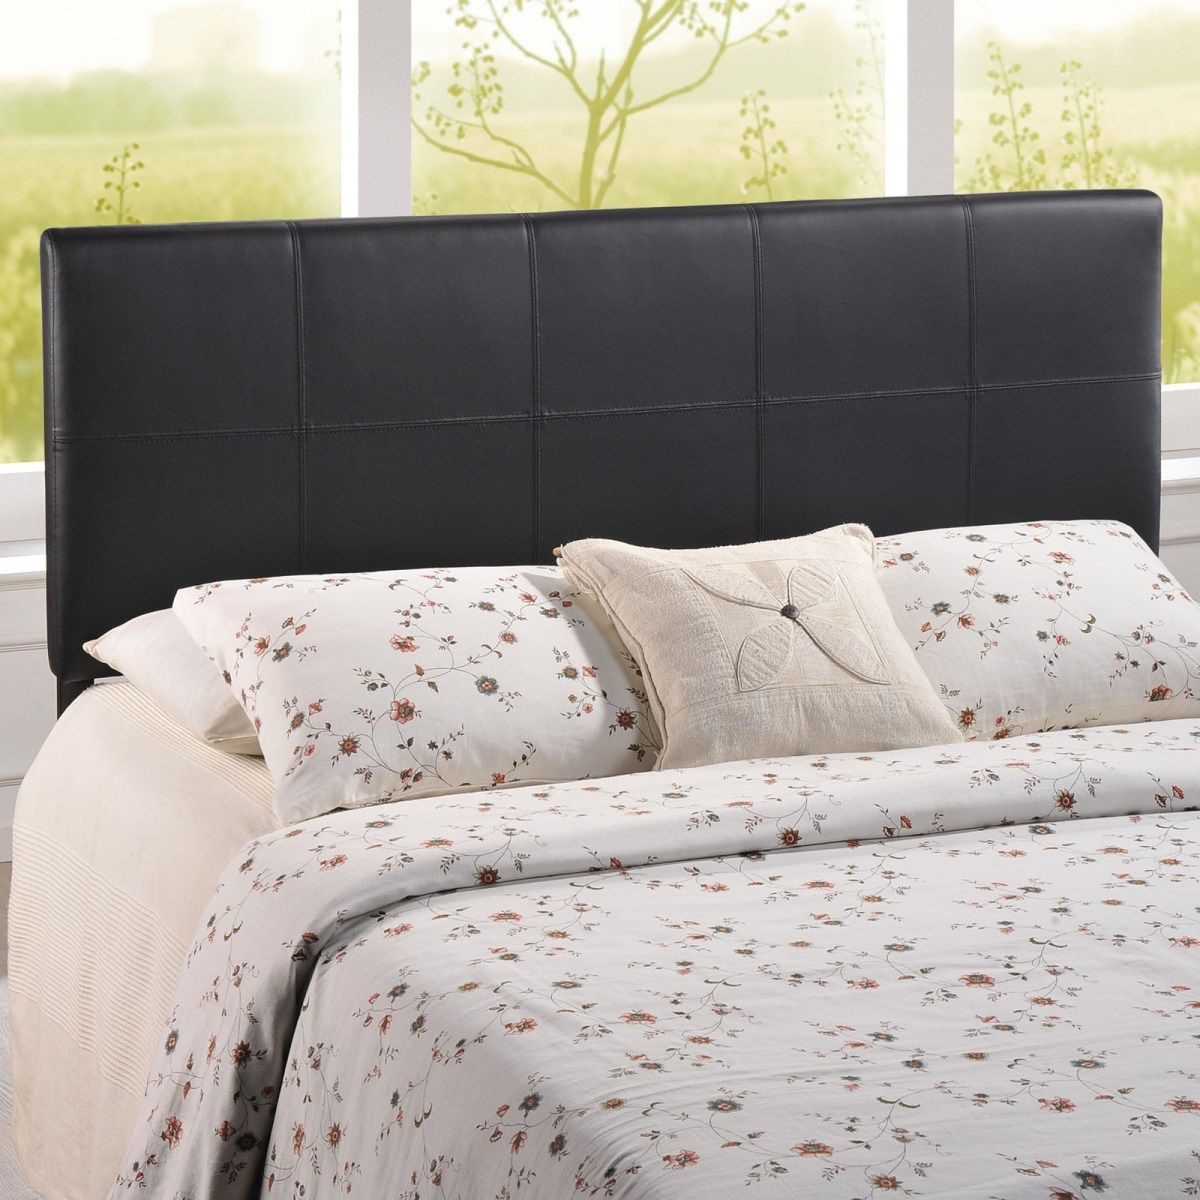 Best Oliver Queen Headboard In Black Mod 5131 Upholstered 400 x 300